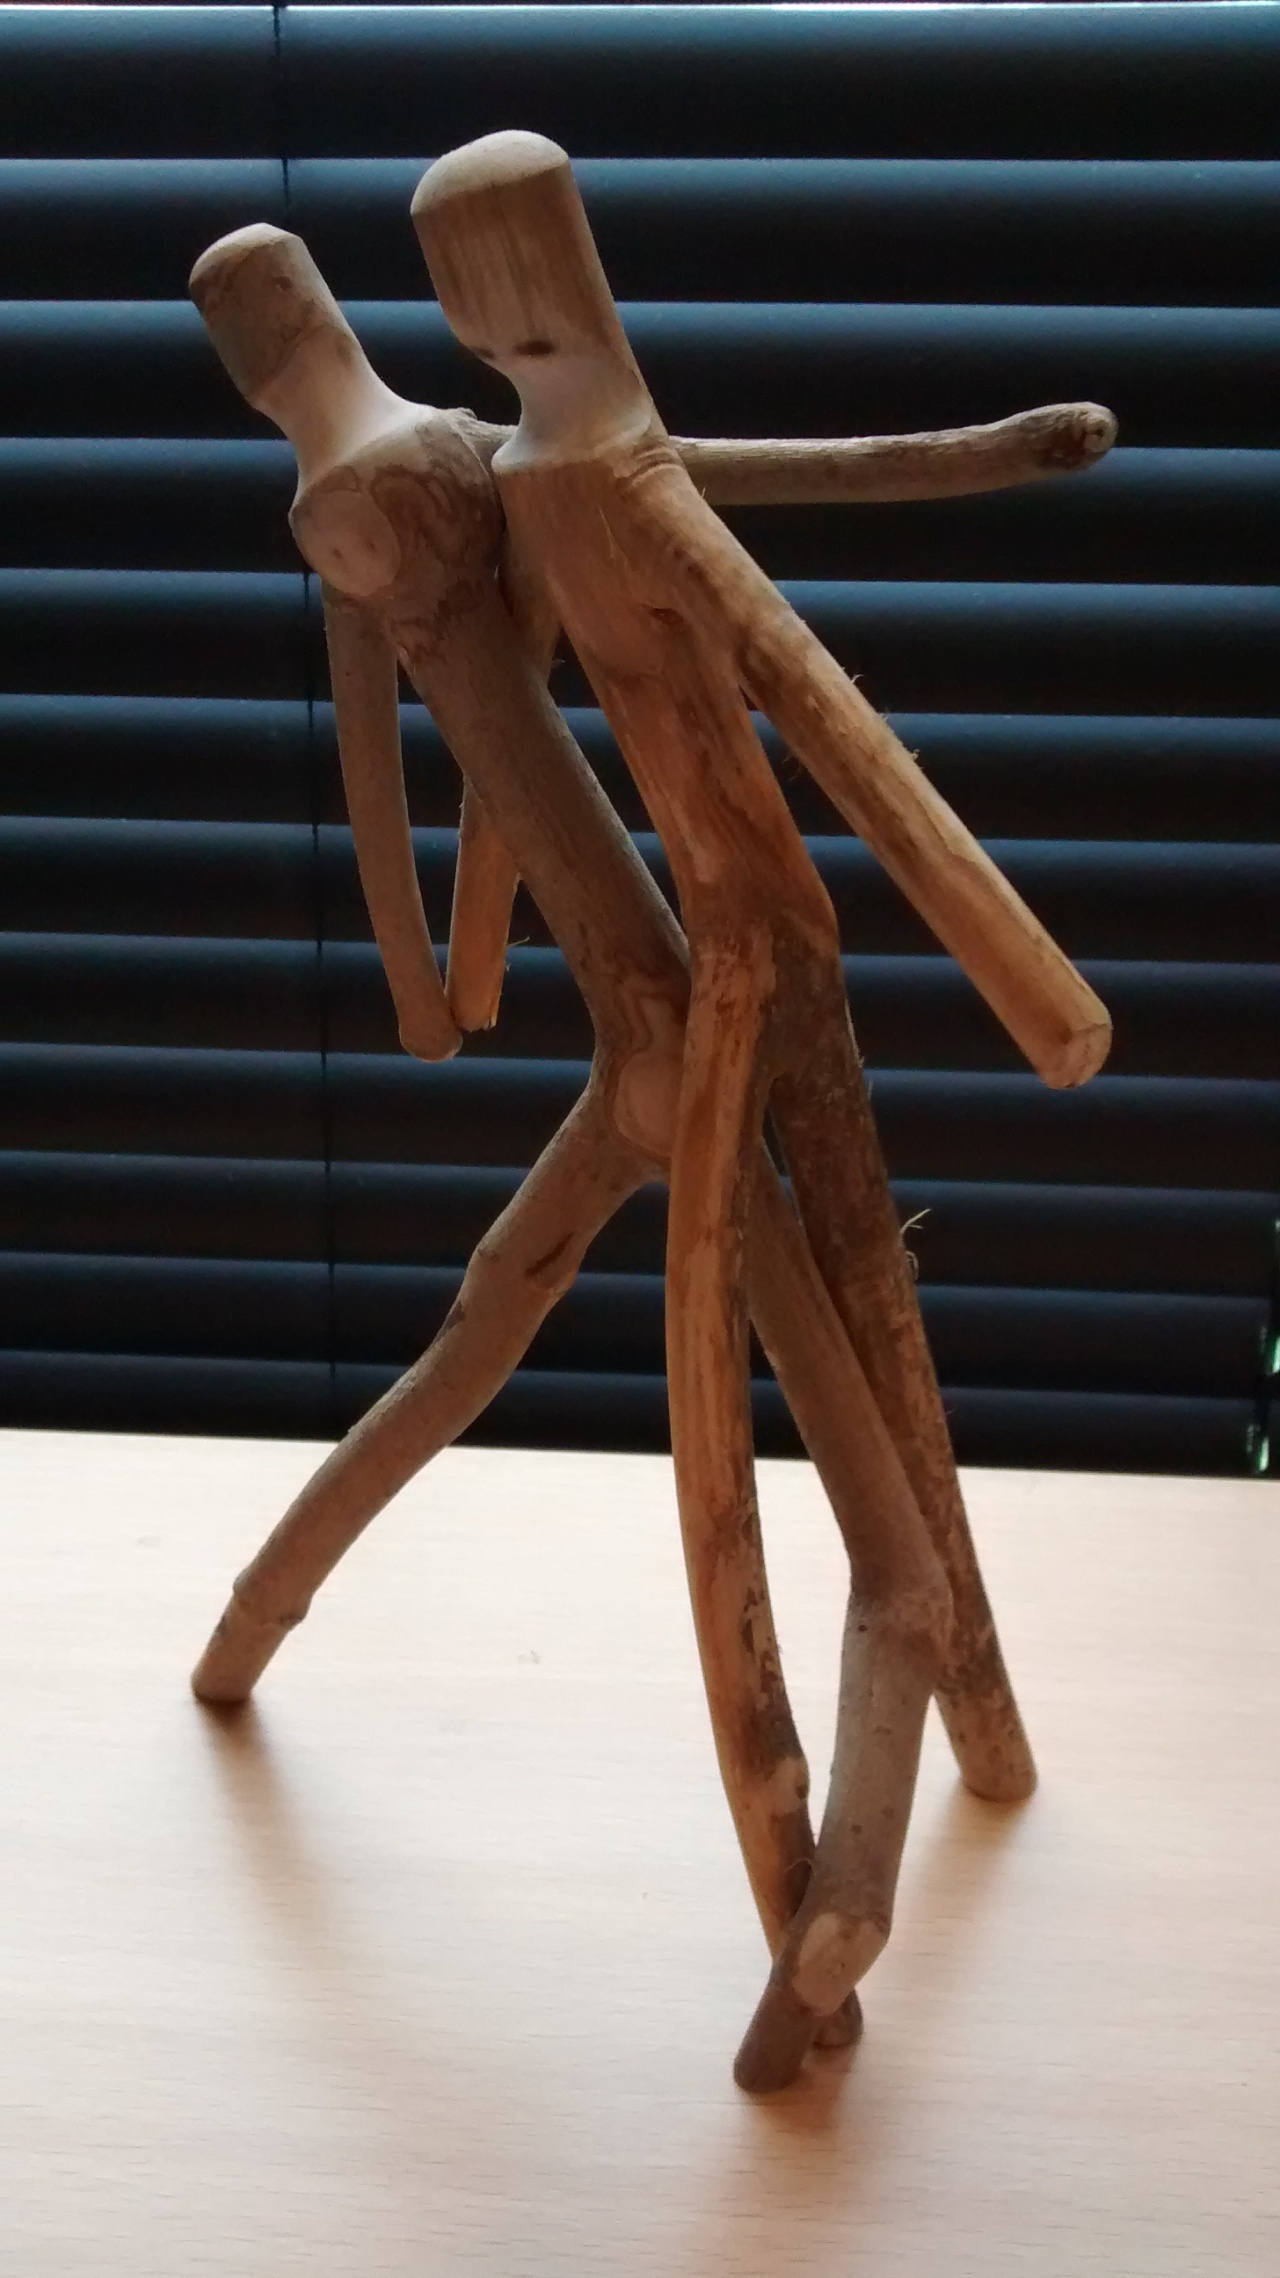 Wood You Like to Dance? Art Asked. Stick Sculpture#8915